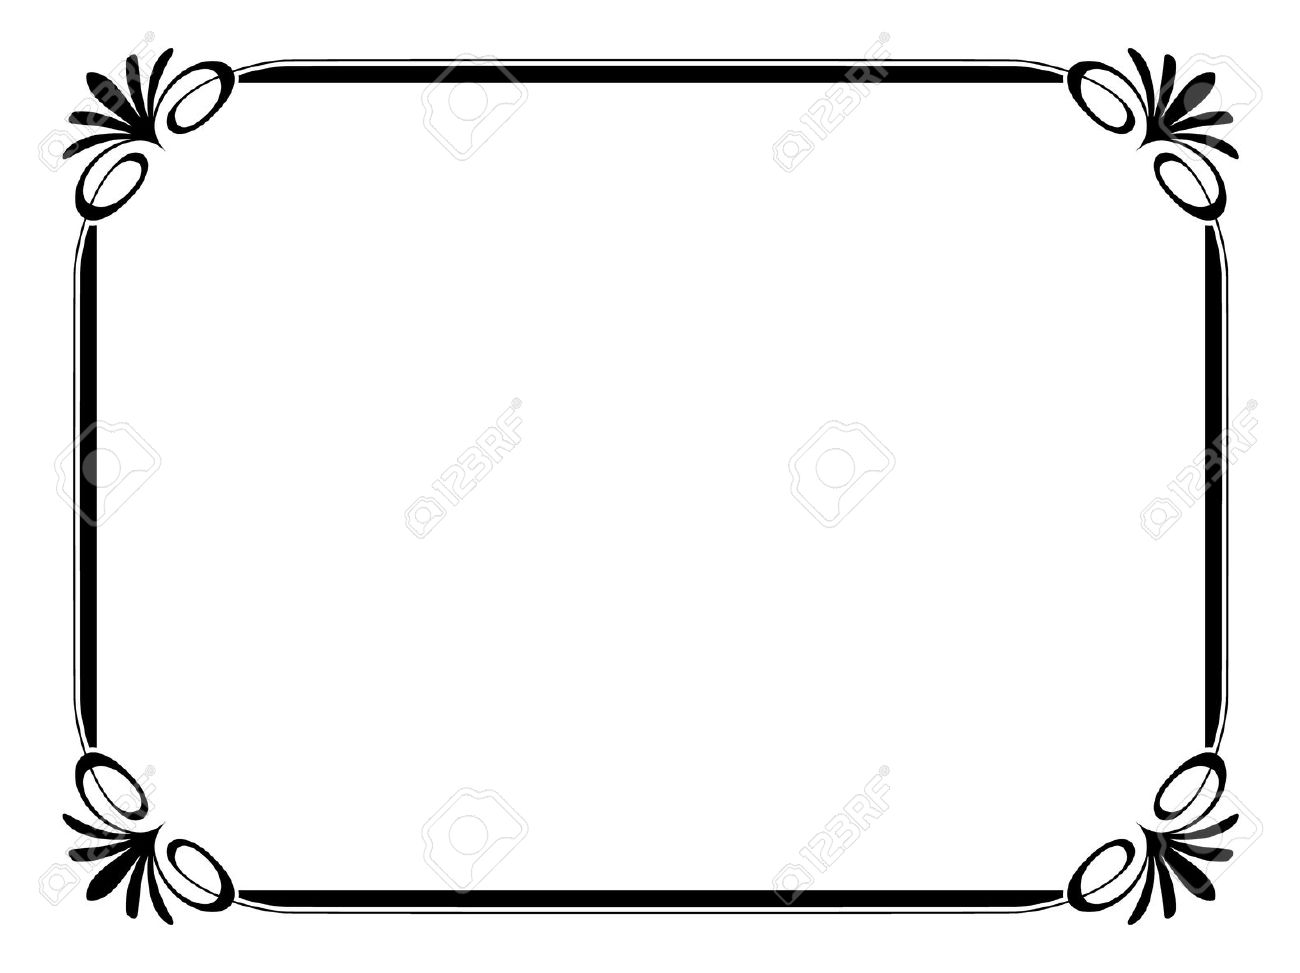 Certificate Borders And Frames Clipart | Free download ...